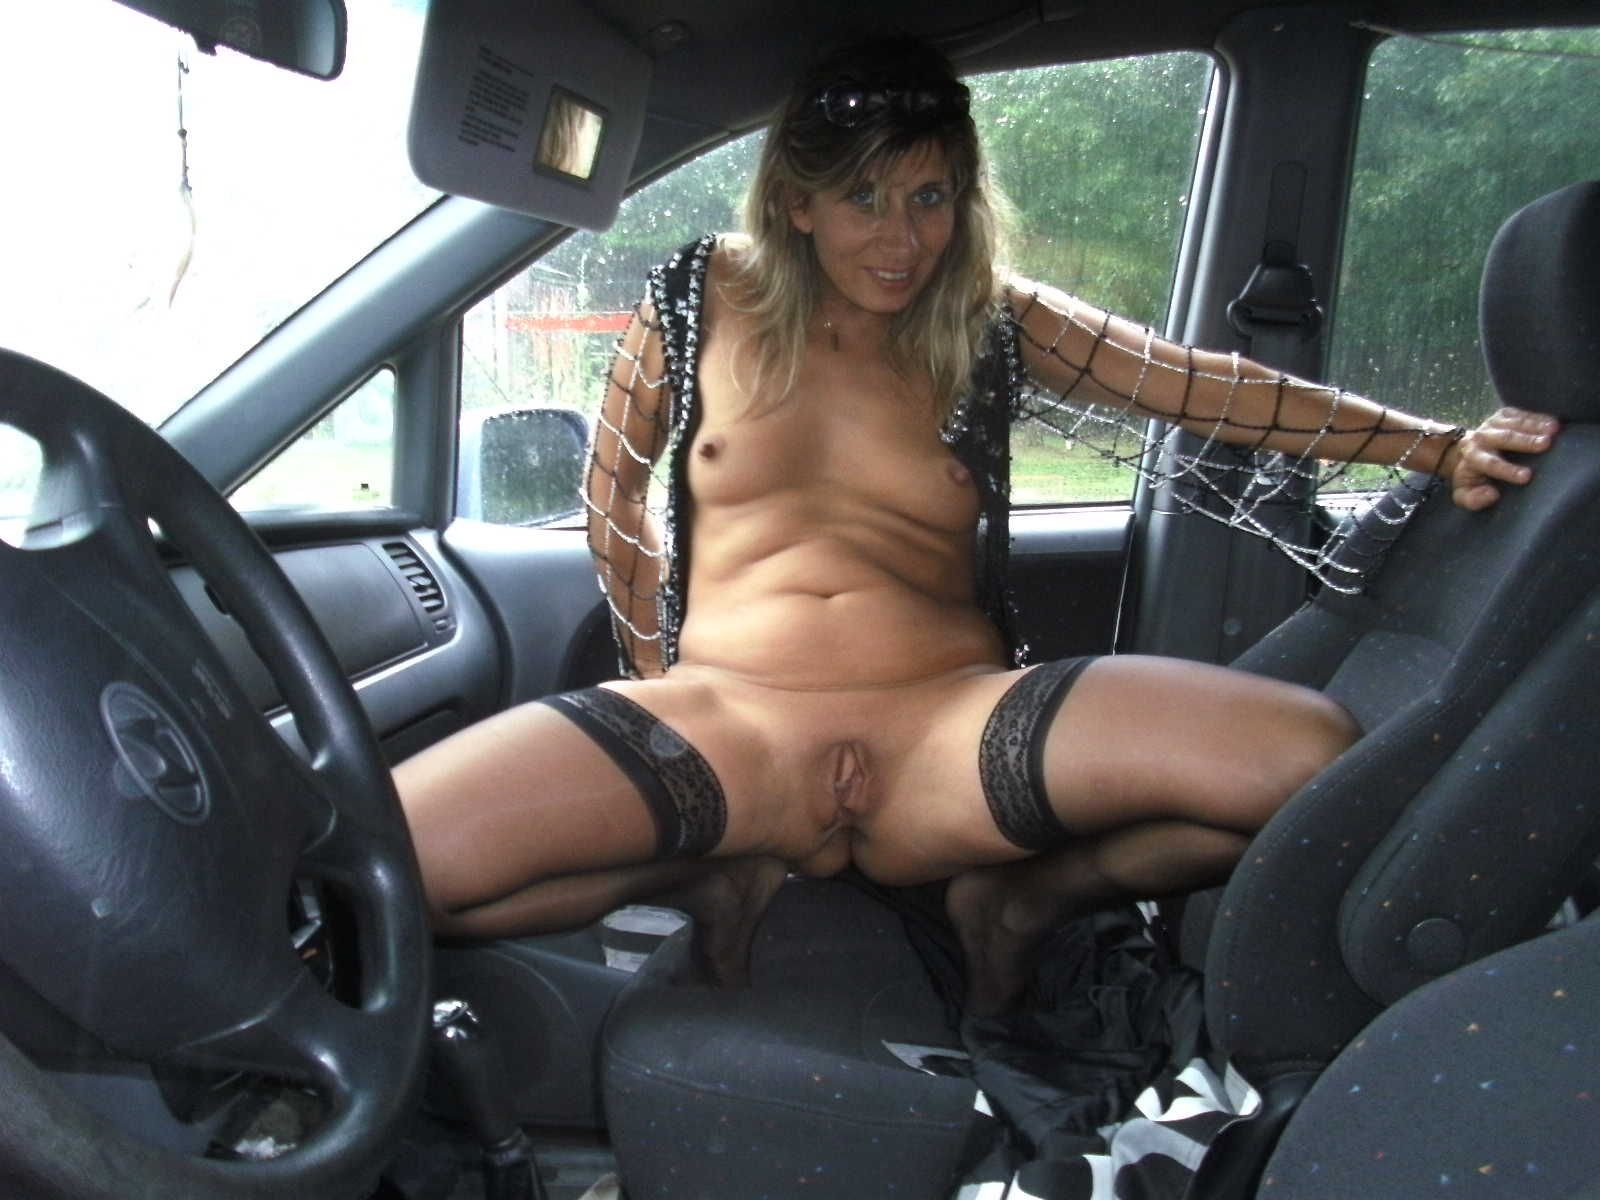 Naked ladies using a car shifter as a dildo, young boys nude giving blowjobs